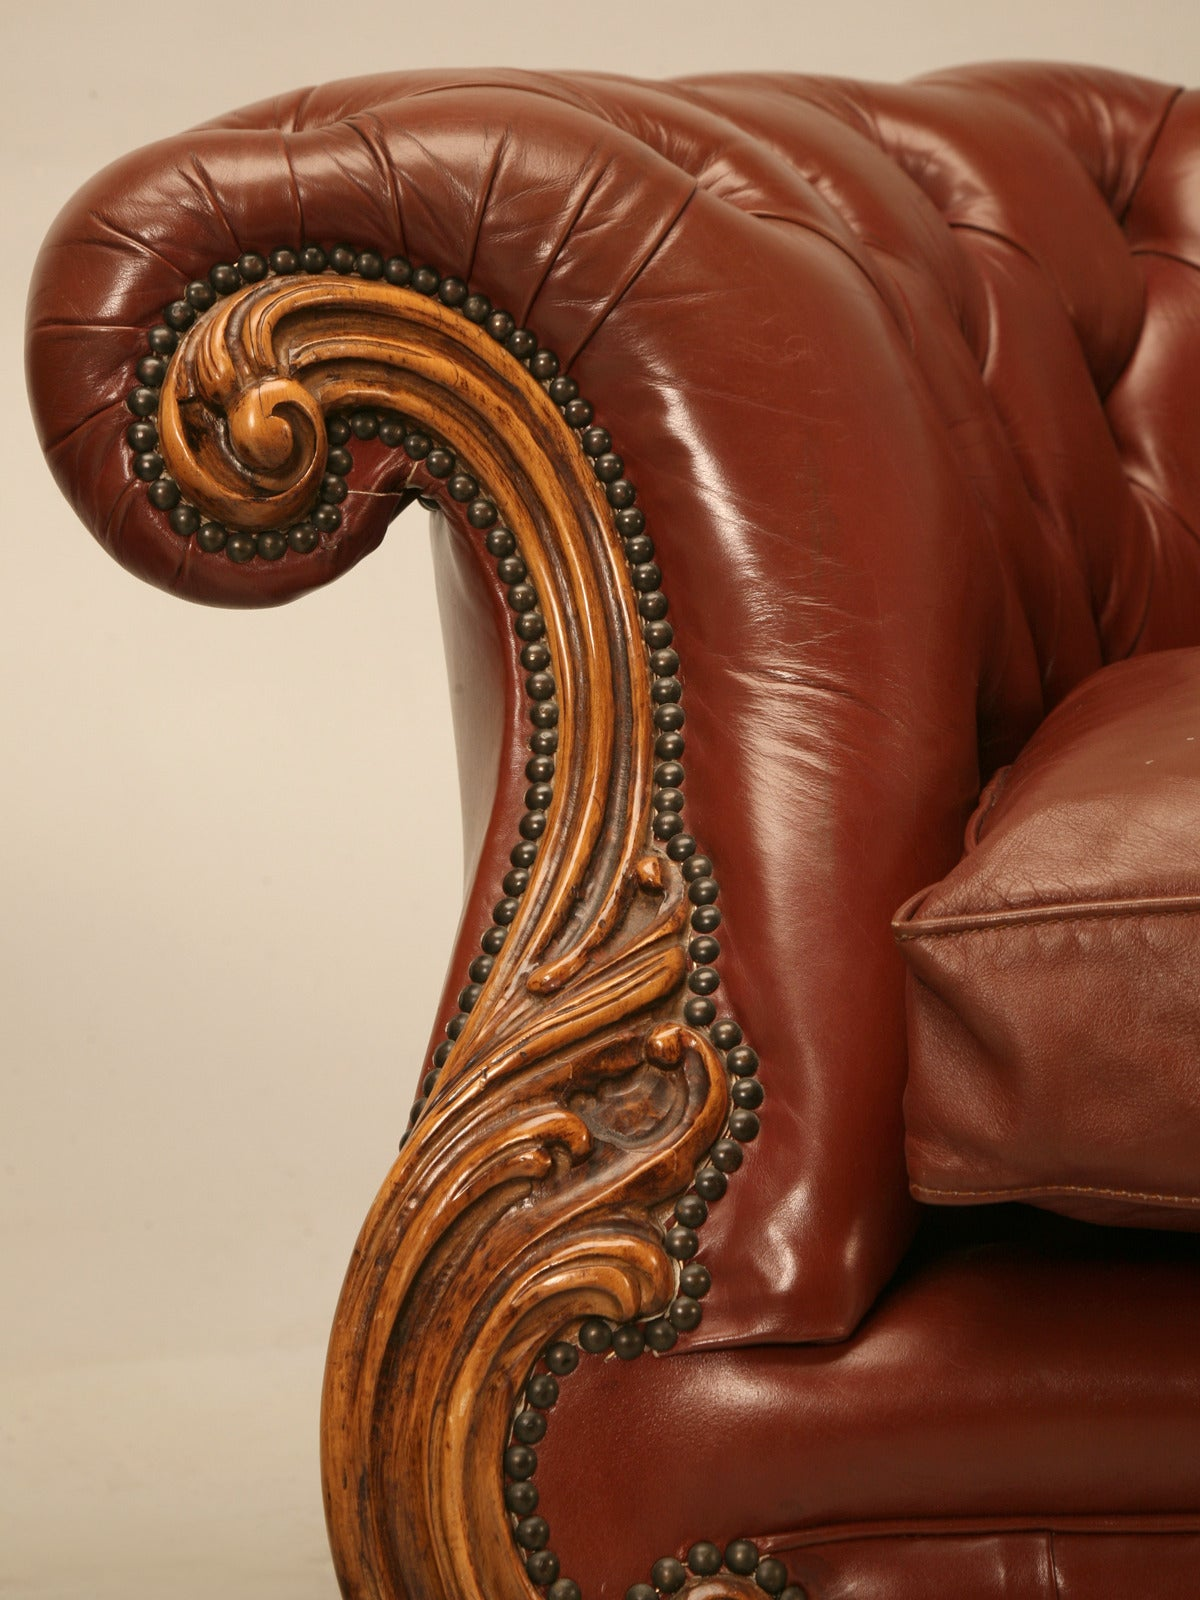 Chesterfield Sofa Krefeld French Leather Chesterfields Armchairs With A Bit Of A